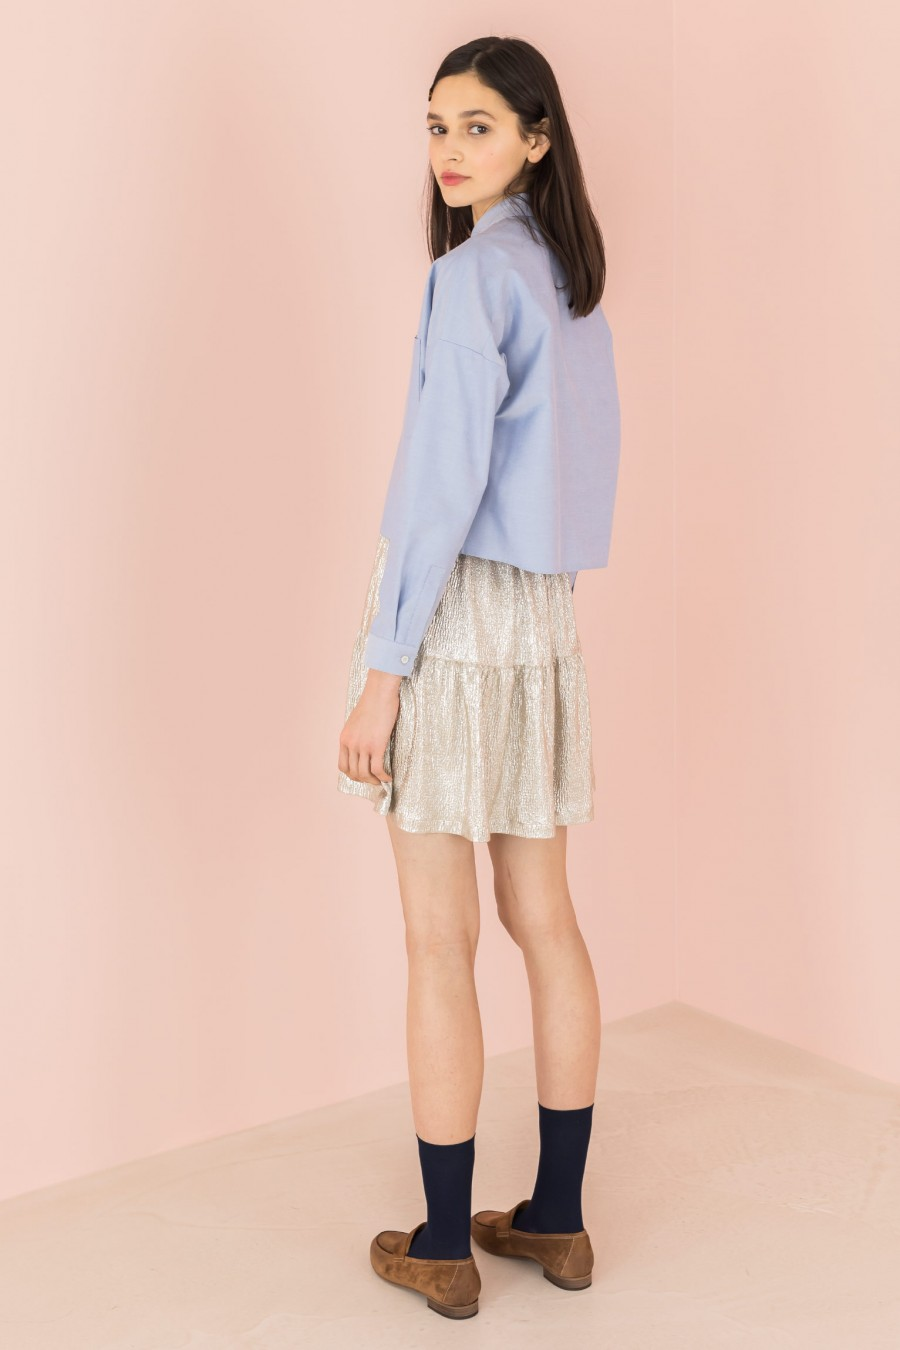 platinum-colored summer skirt